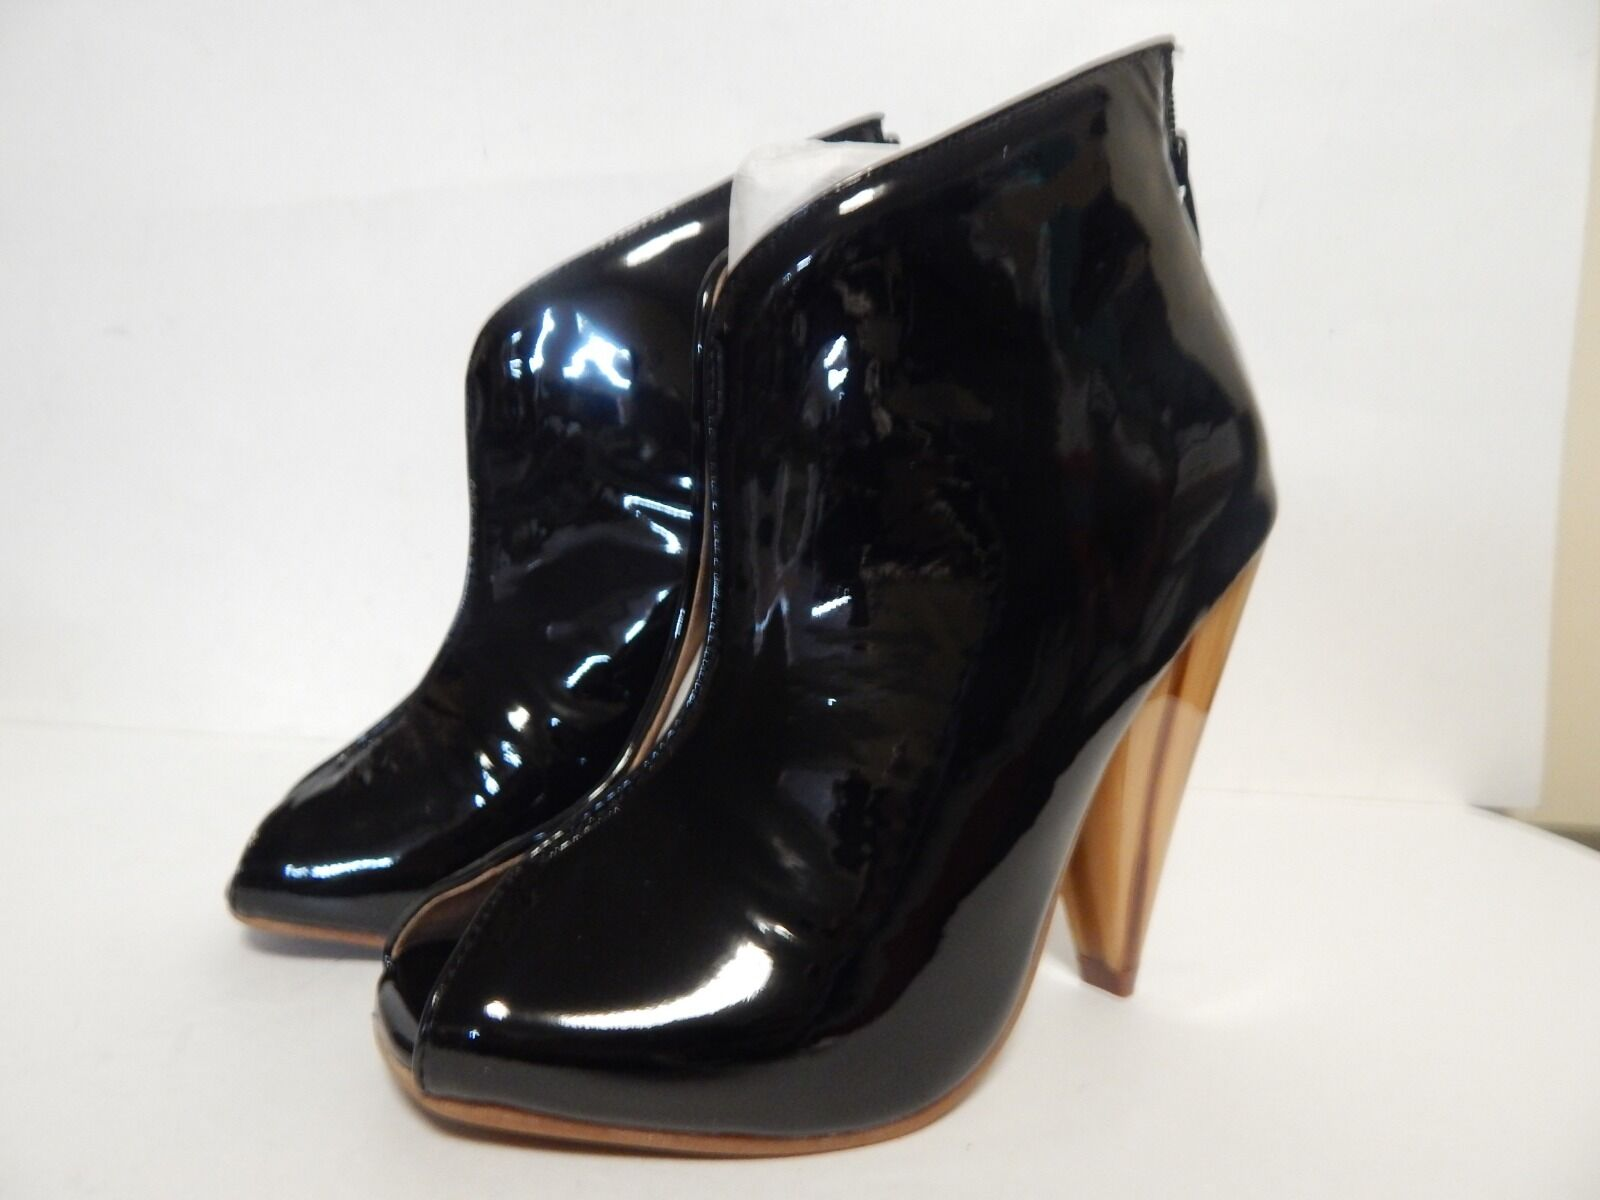 Jeffrey Campbell Easton Open Toe Bootie  Black Patent New w Box